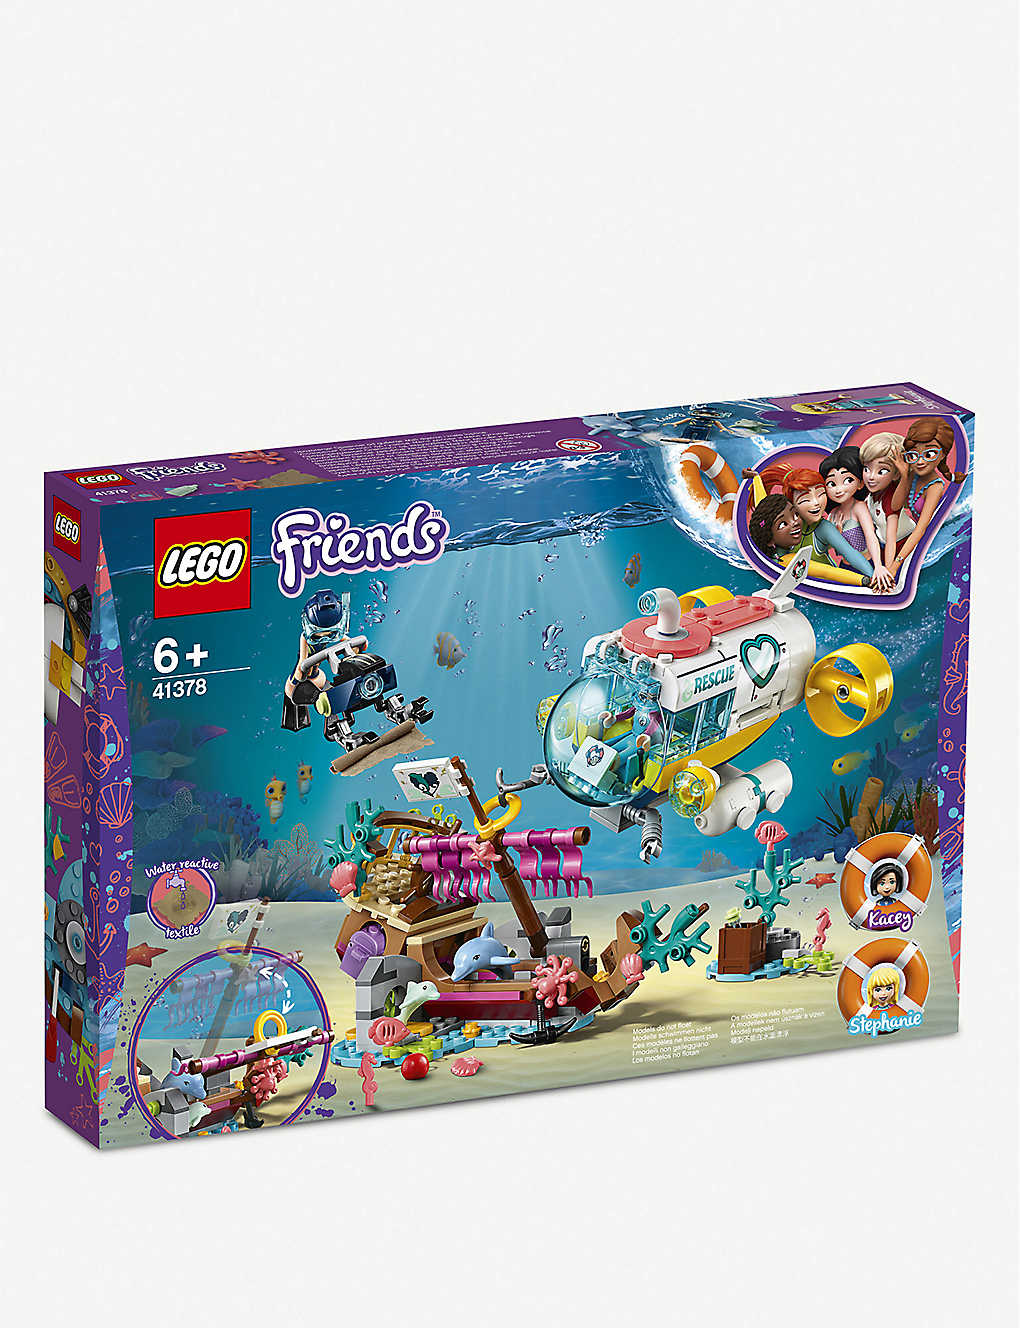 LEGO: Friends Dolphin Rescue mission set